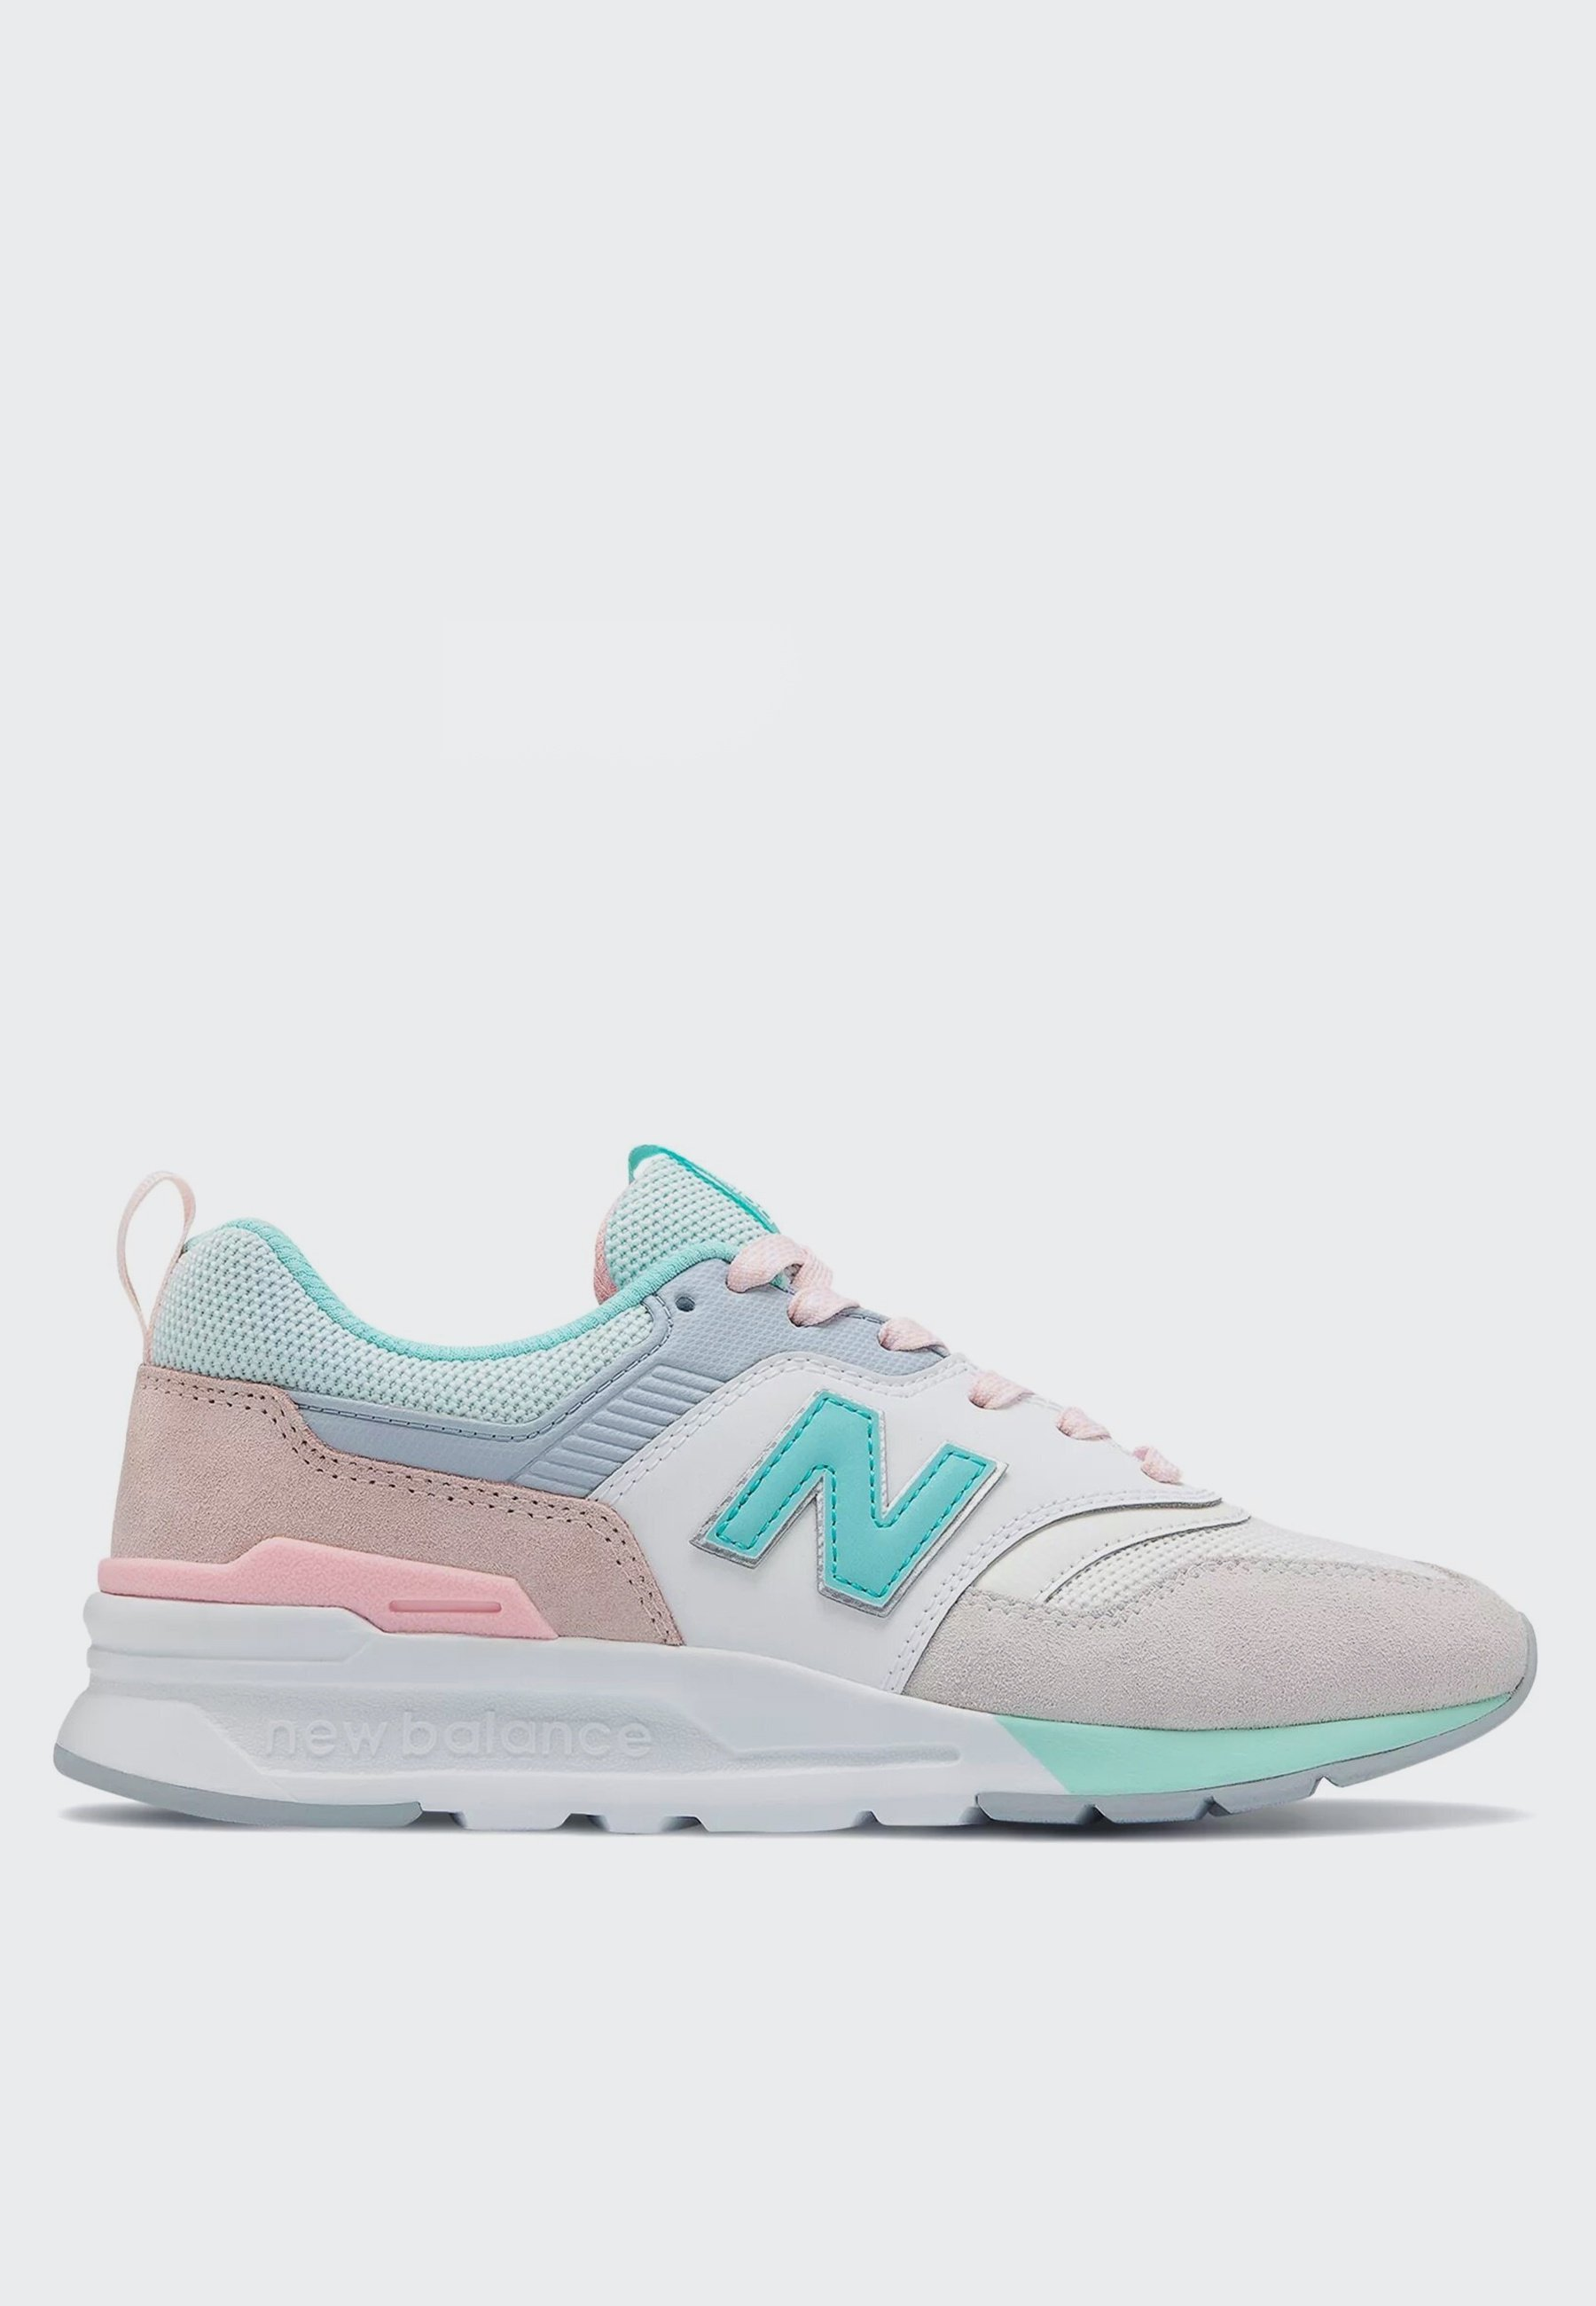 New Balance 997 H - Sea Salt/Light Tidepool